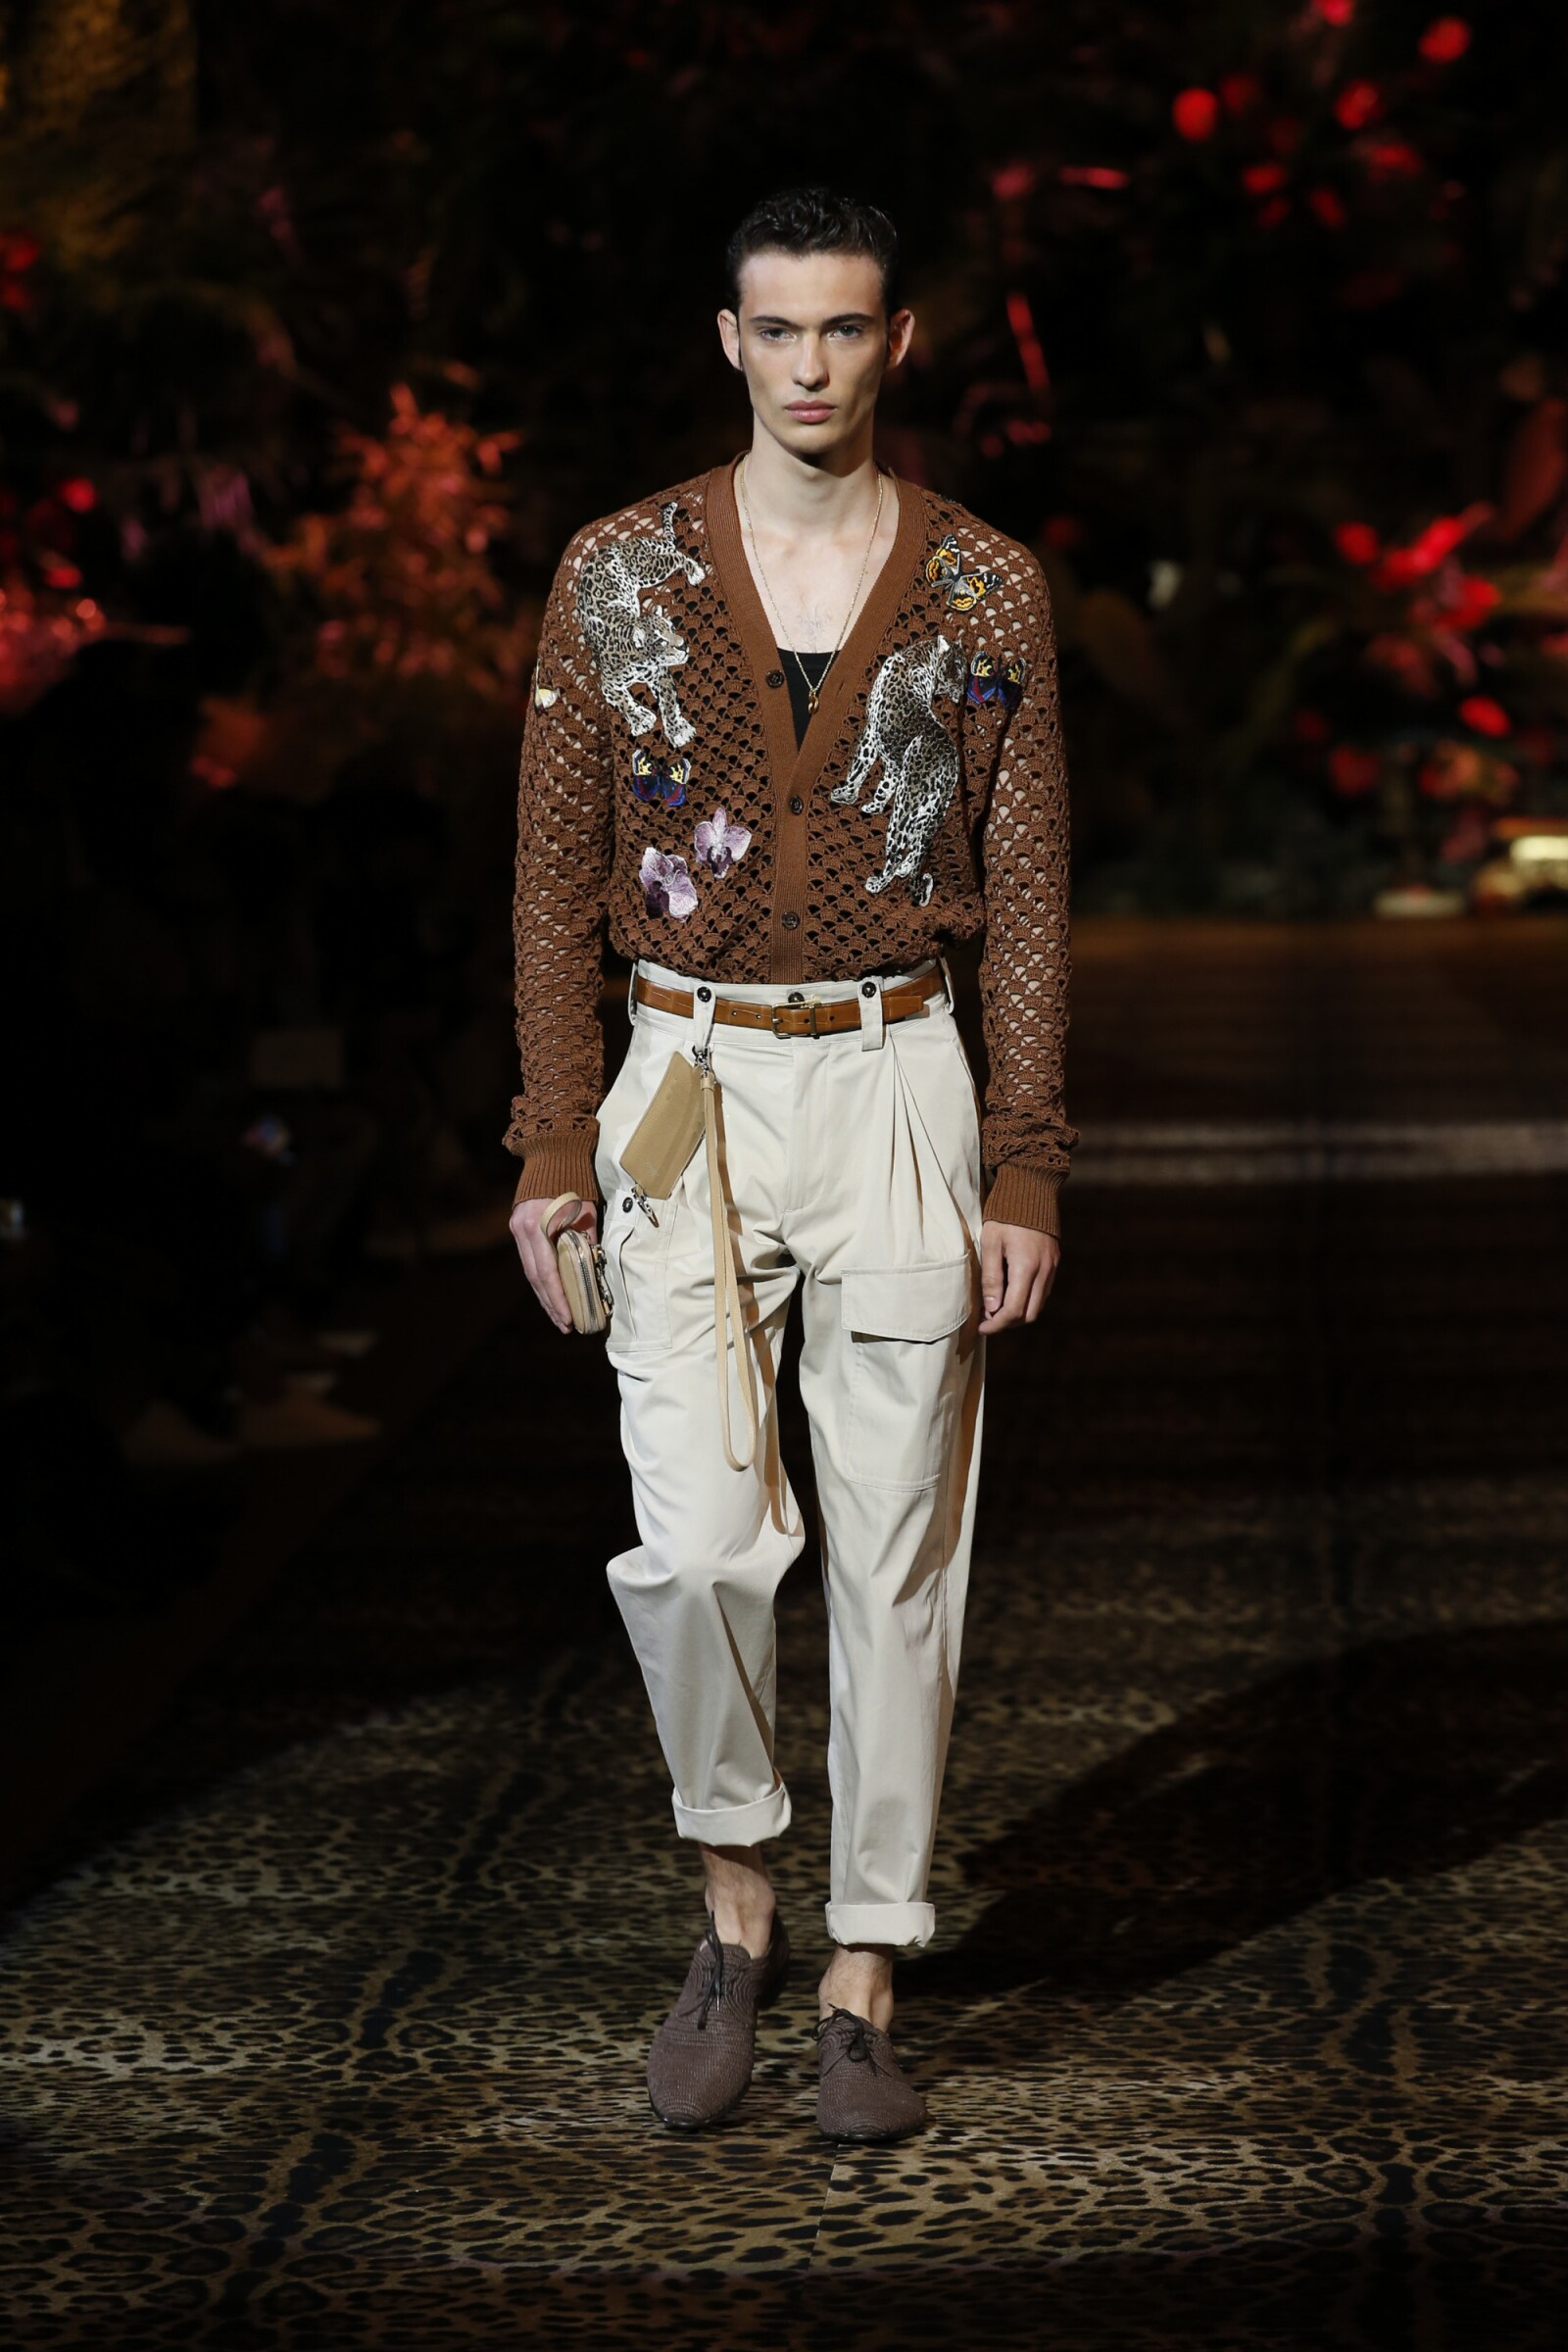 Dolce&Gabbana Men's Fashion Show Spring-Summer 2020 (48).jpg